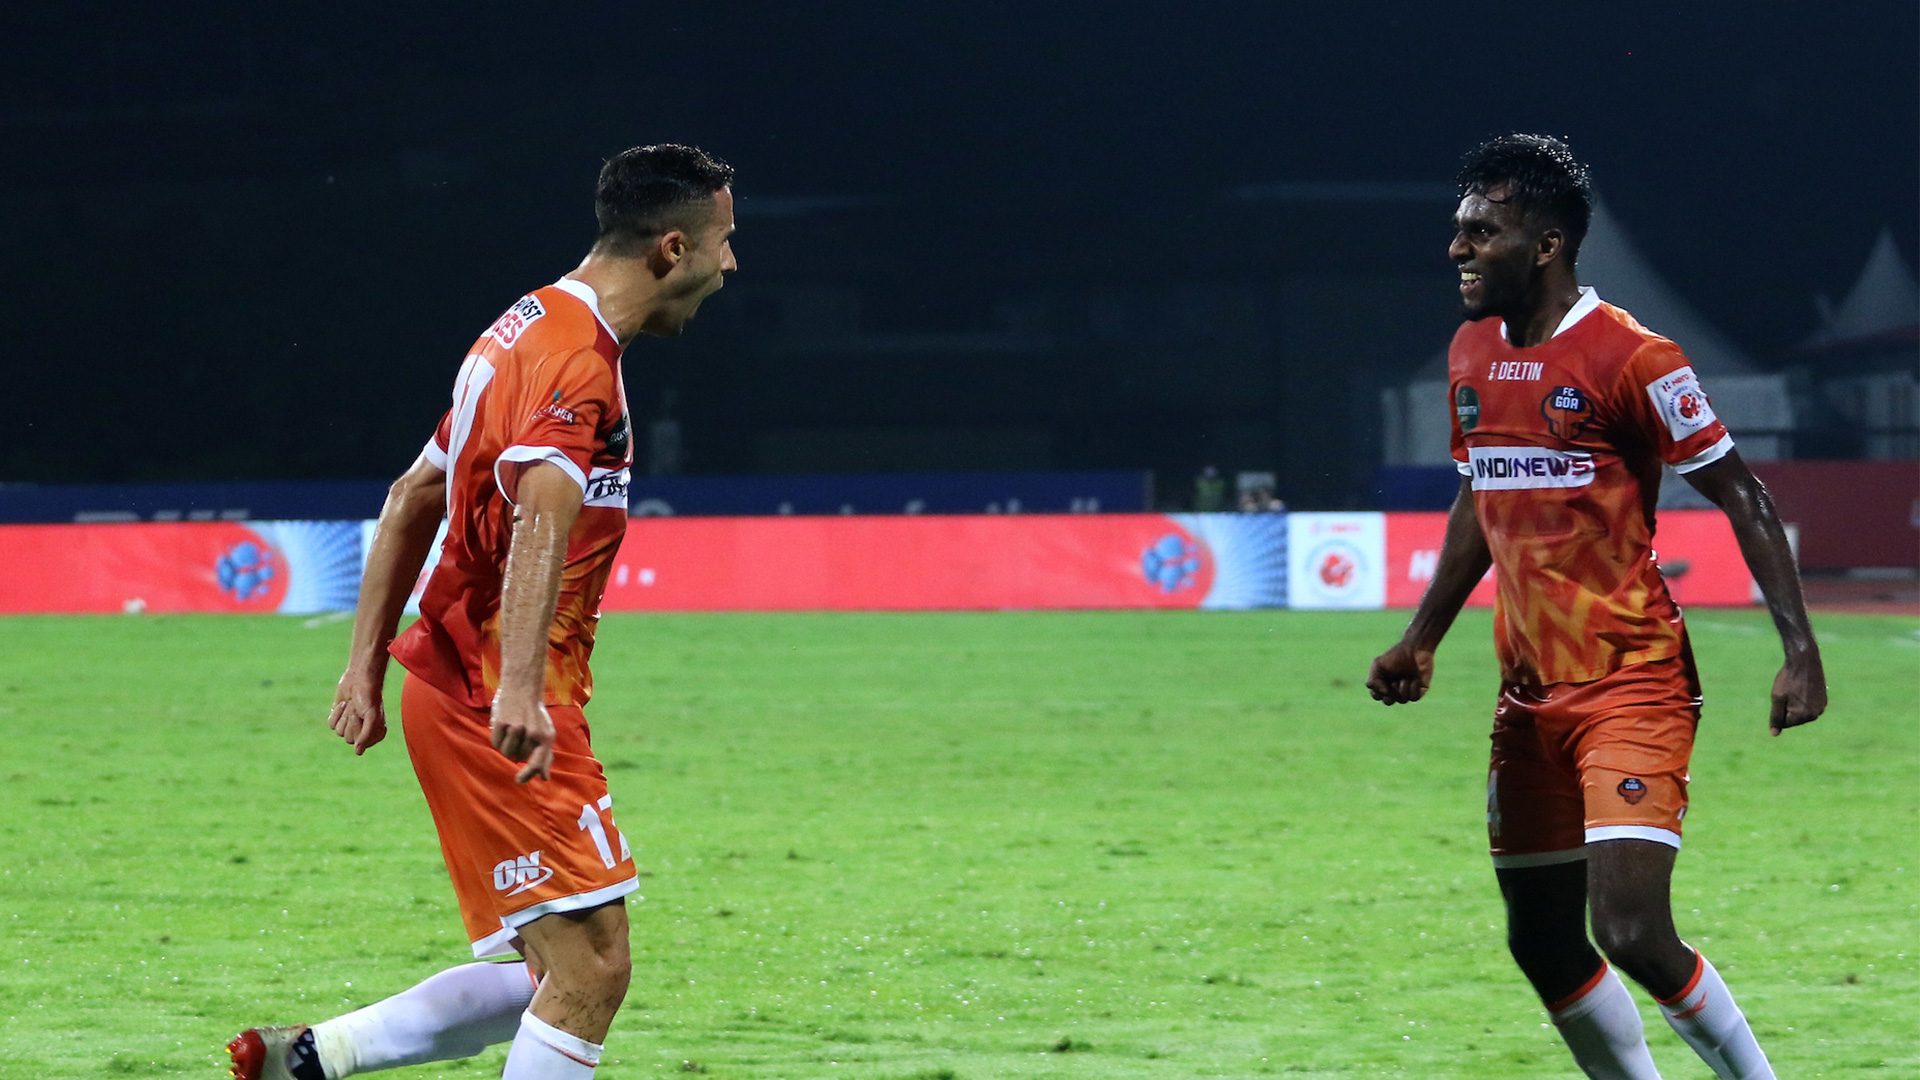 AFC Champions League: AIFF likely to bid to host FC Goa's group